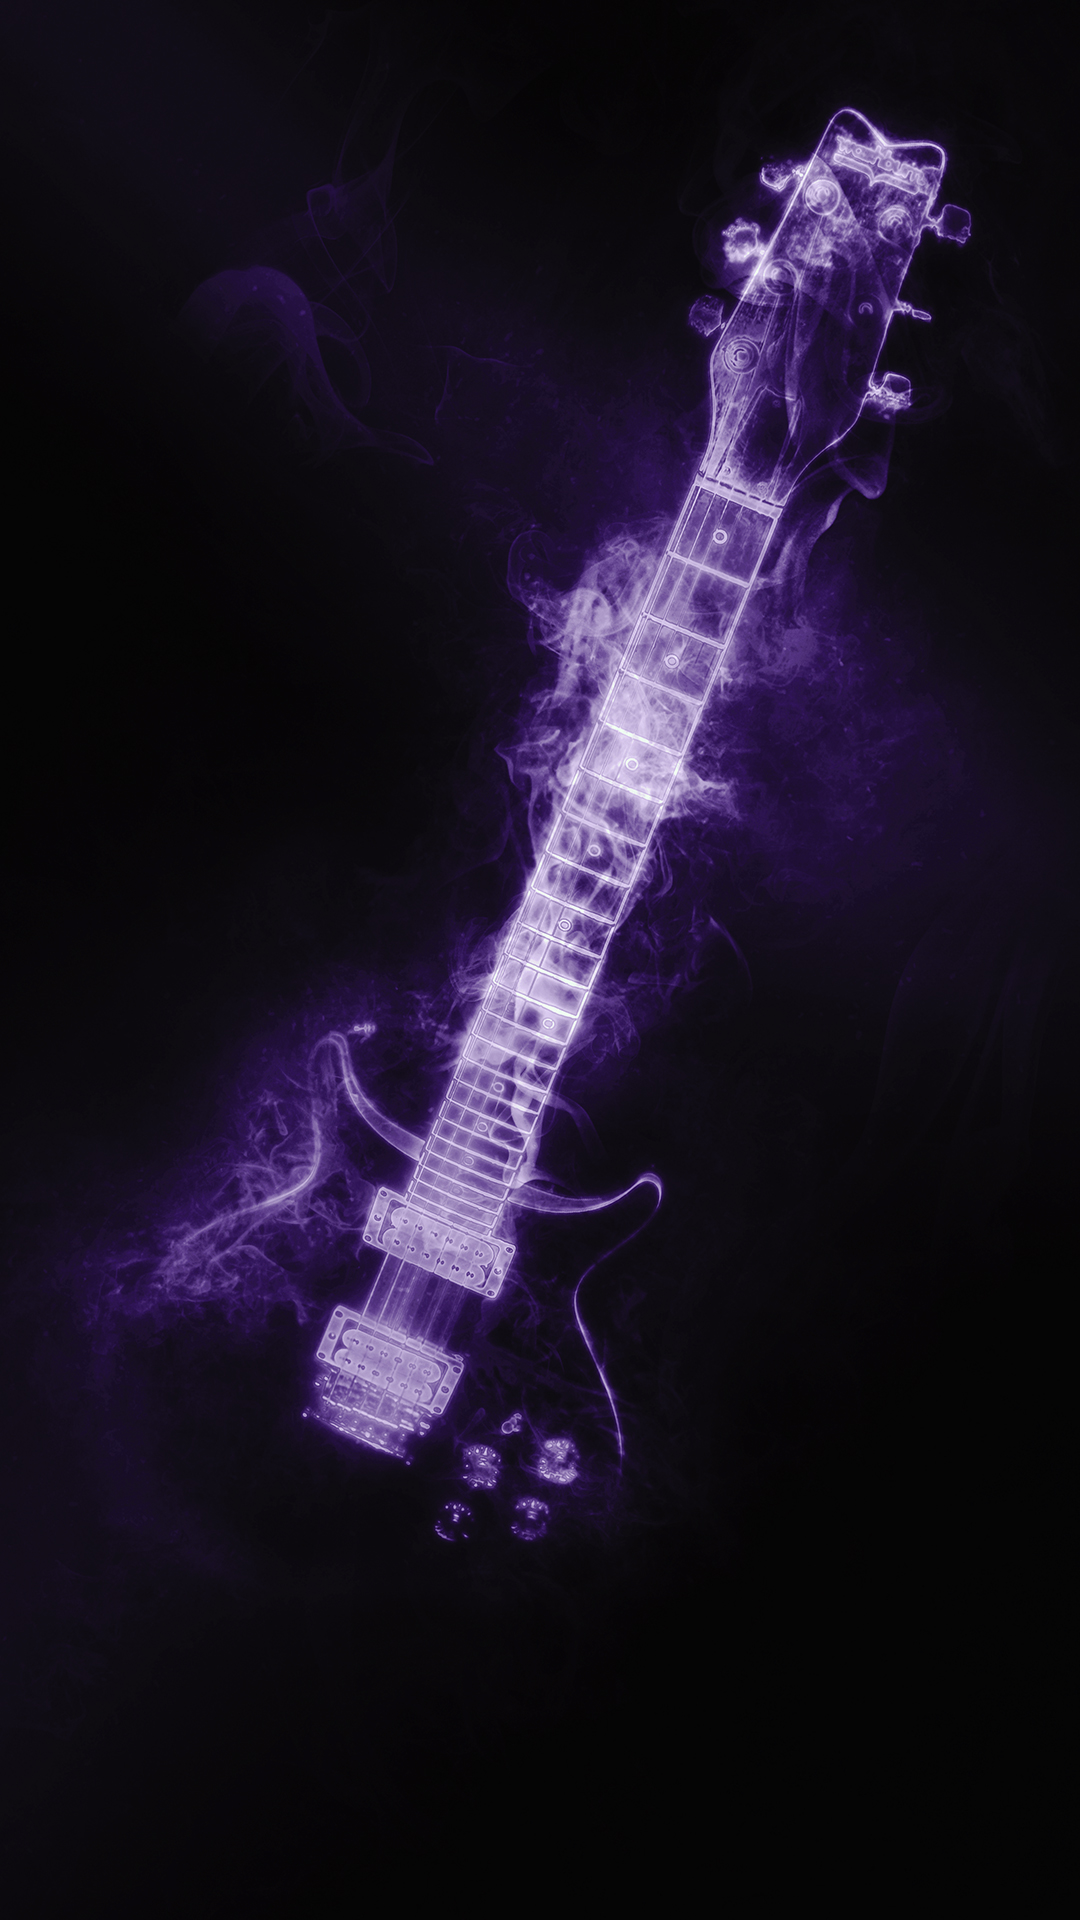 Smoking guitar hd wallpaper for your mobile phone - No smoking wallpaper download ...